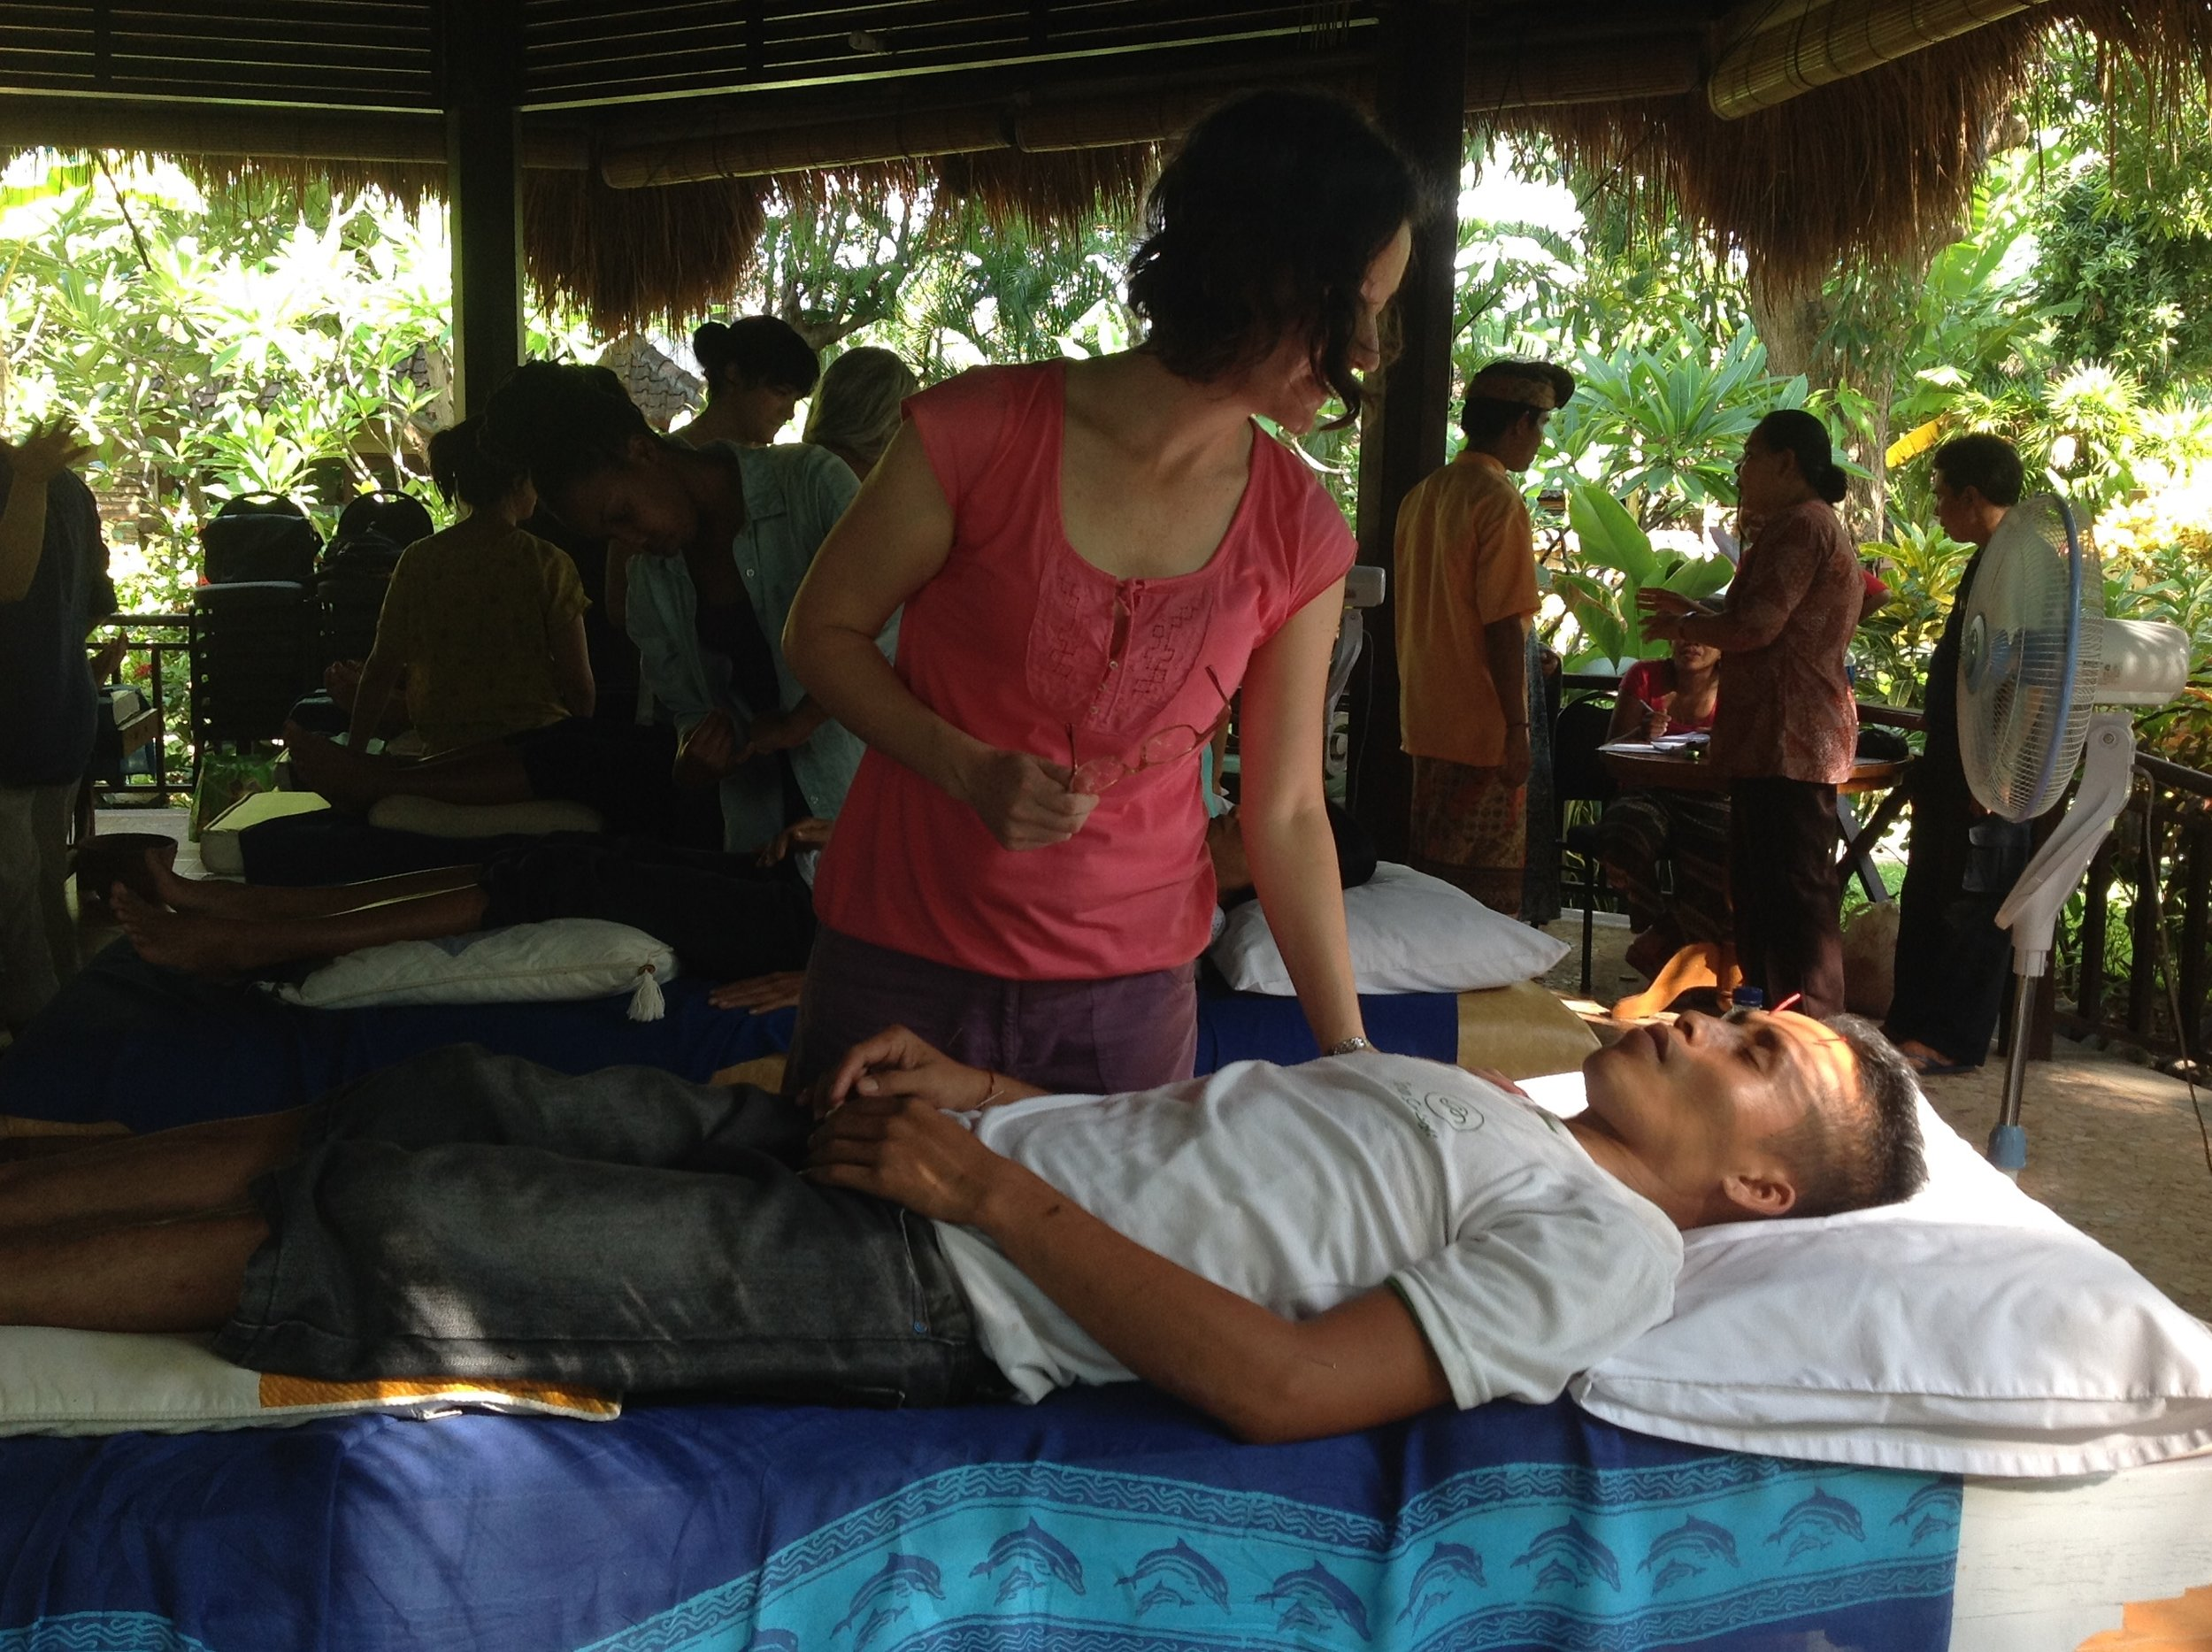 Community Acupuncture and Chinese Medicine Clinic, Pemuteran, Bali 2013.